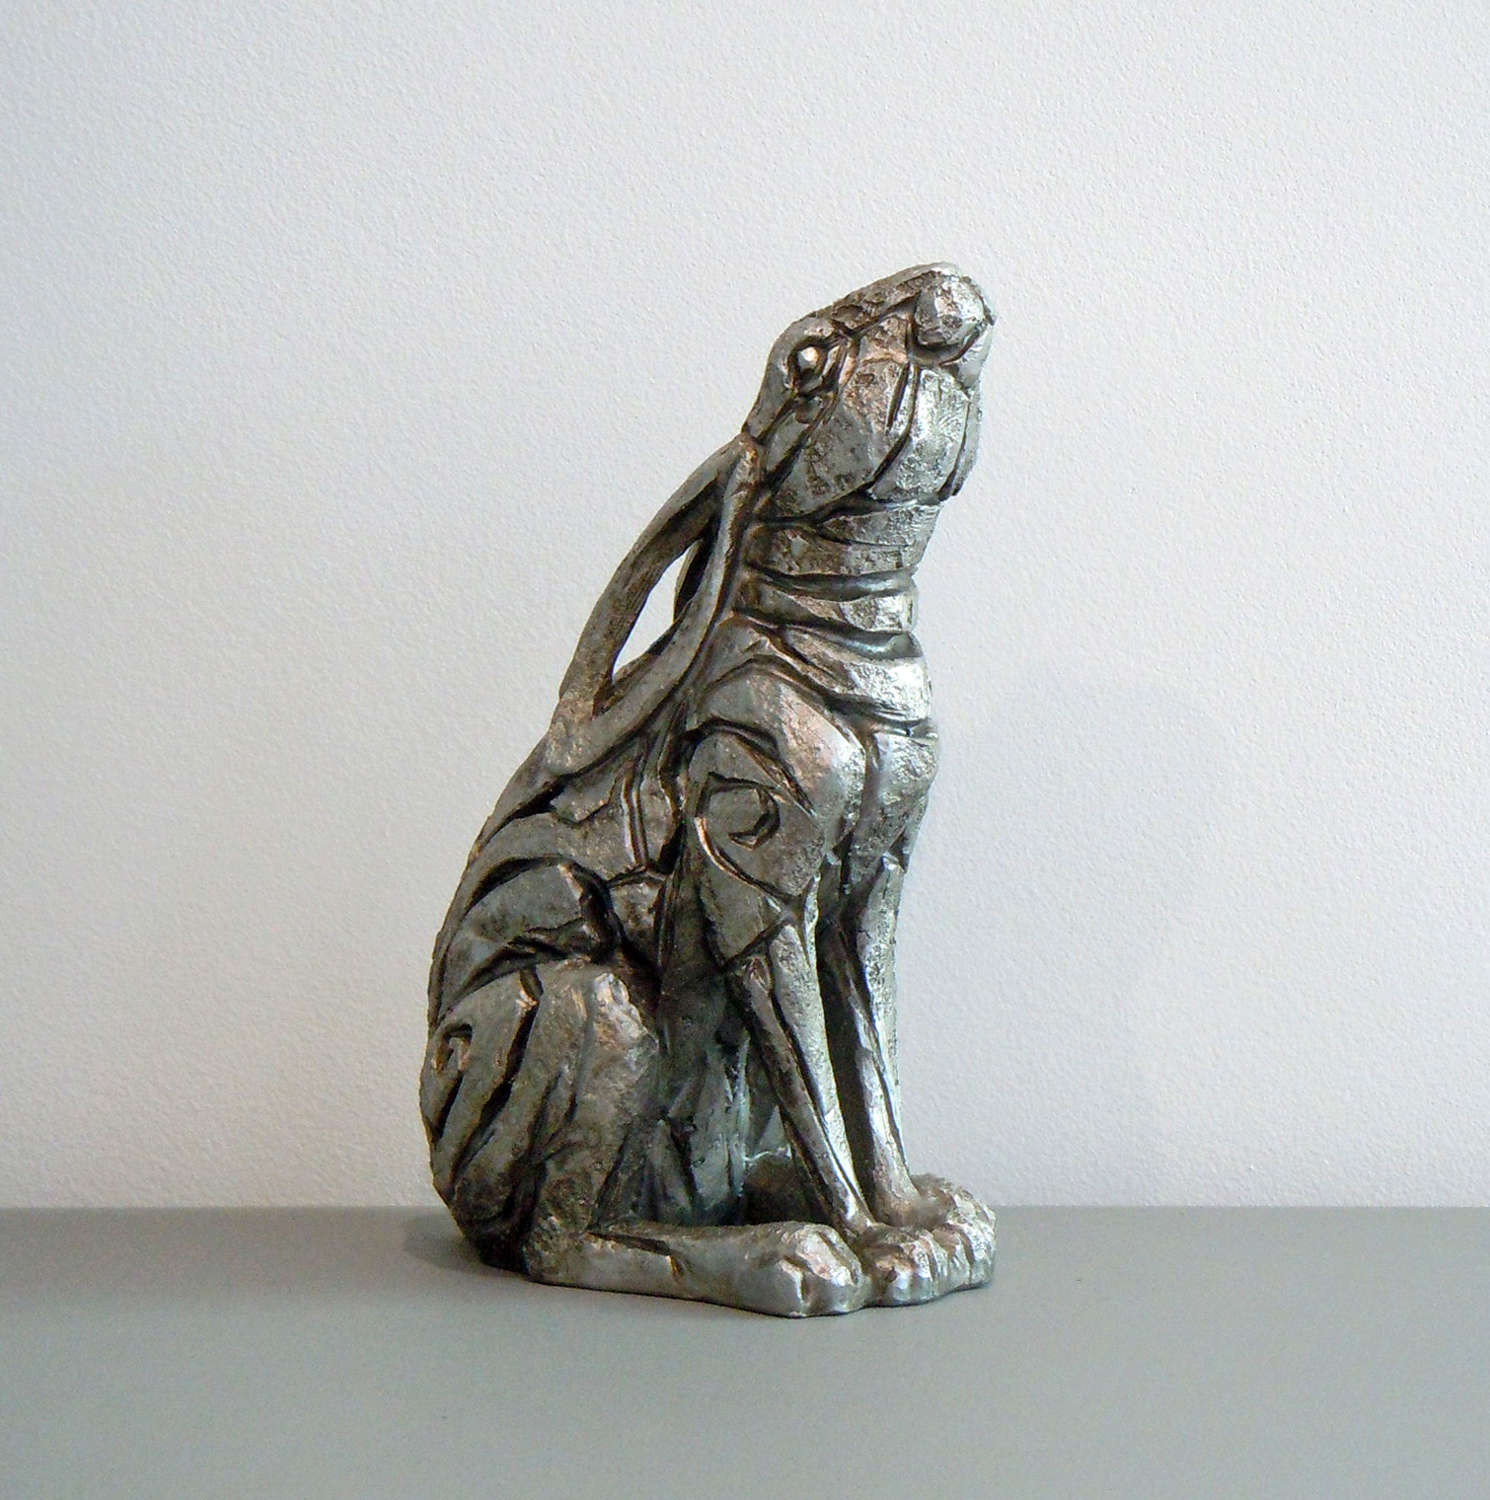 Antique silver star gazing Hare